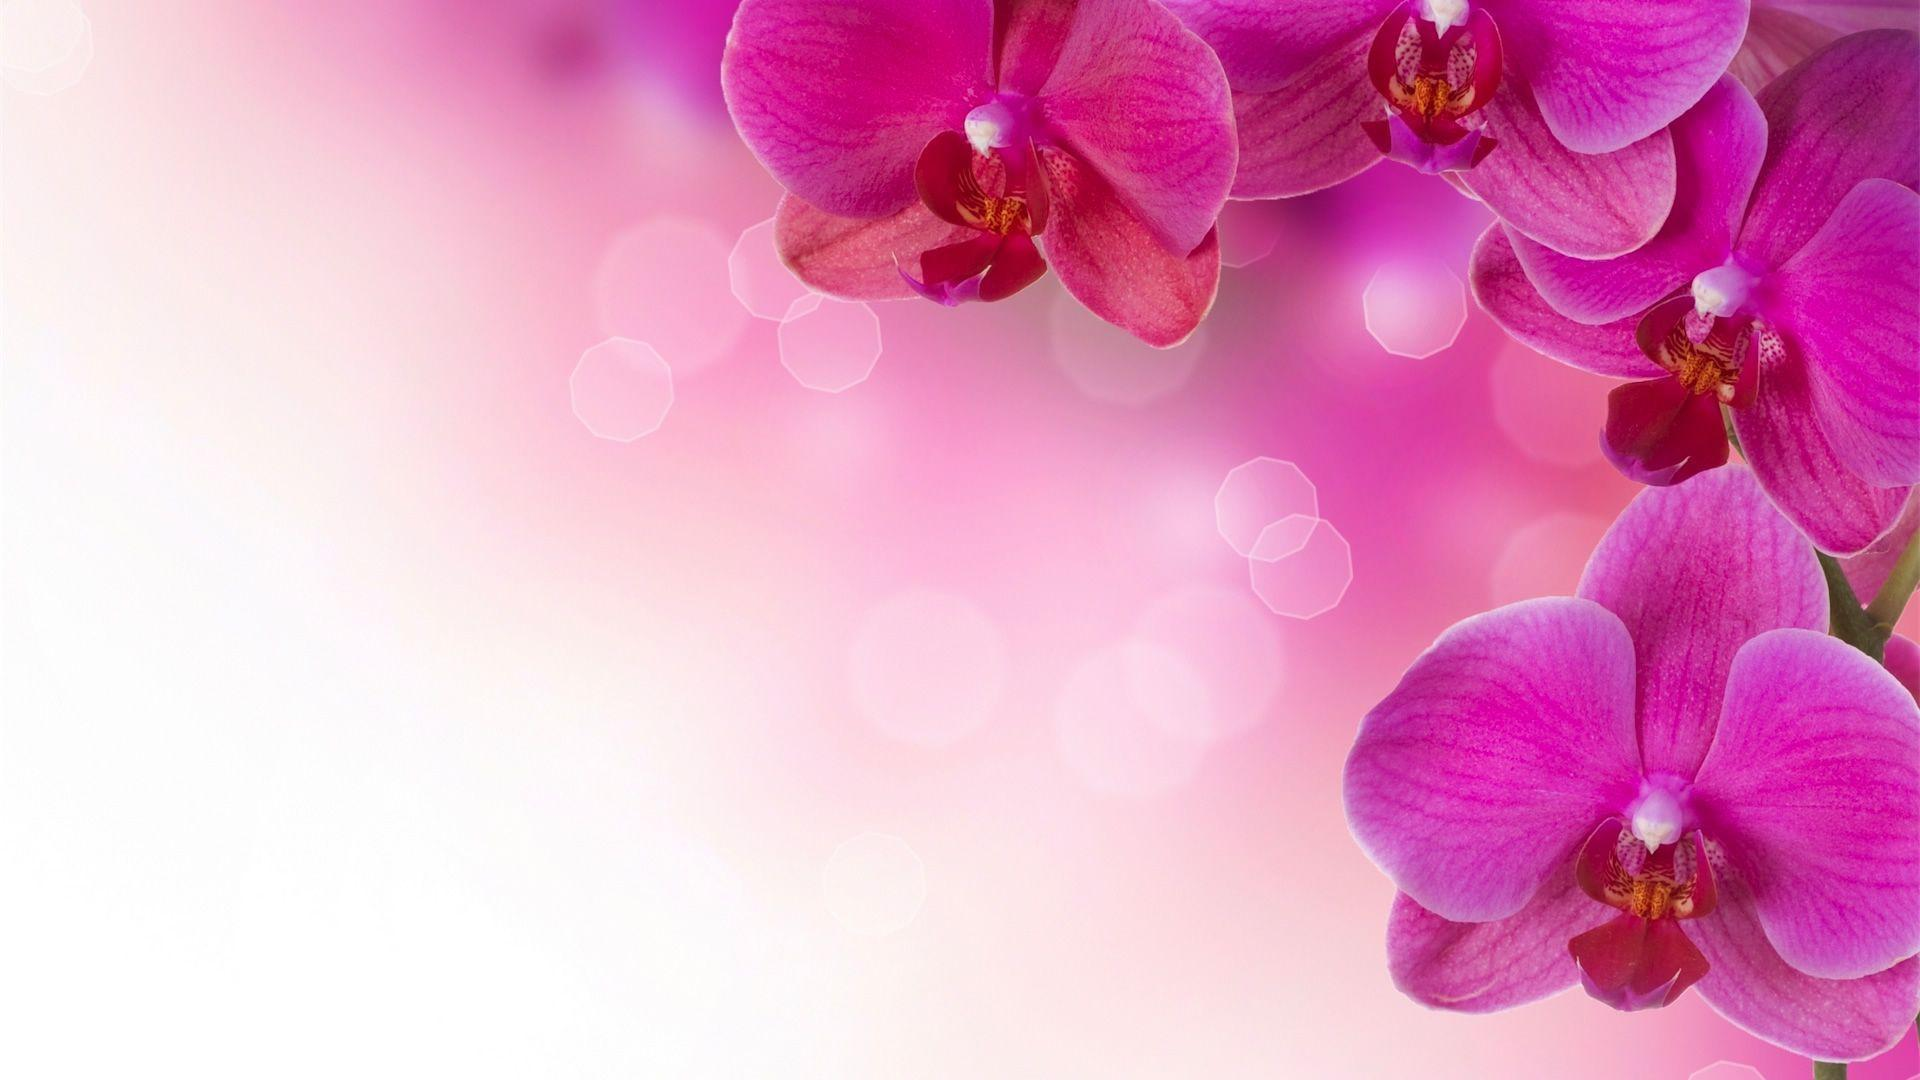 Flower Wallpapers 35 16340 HD Wallpaper | Wallroro.